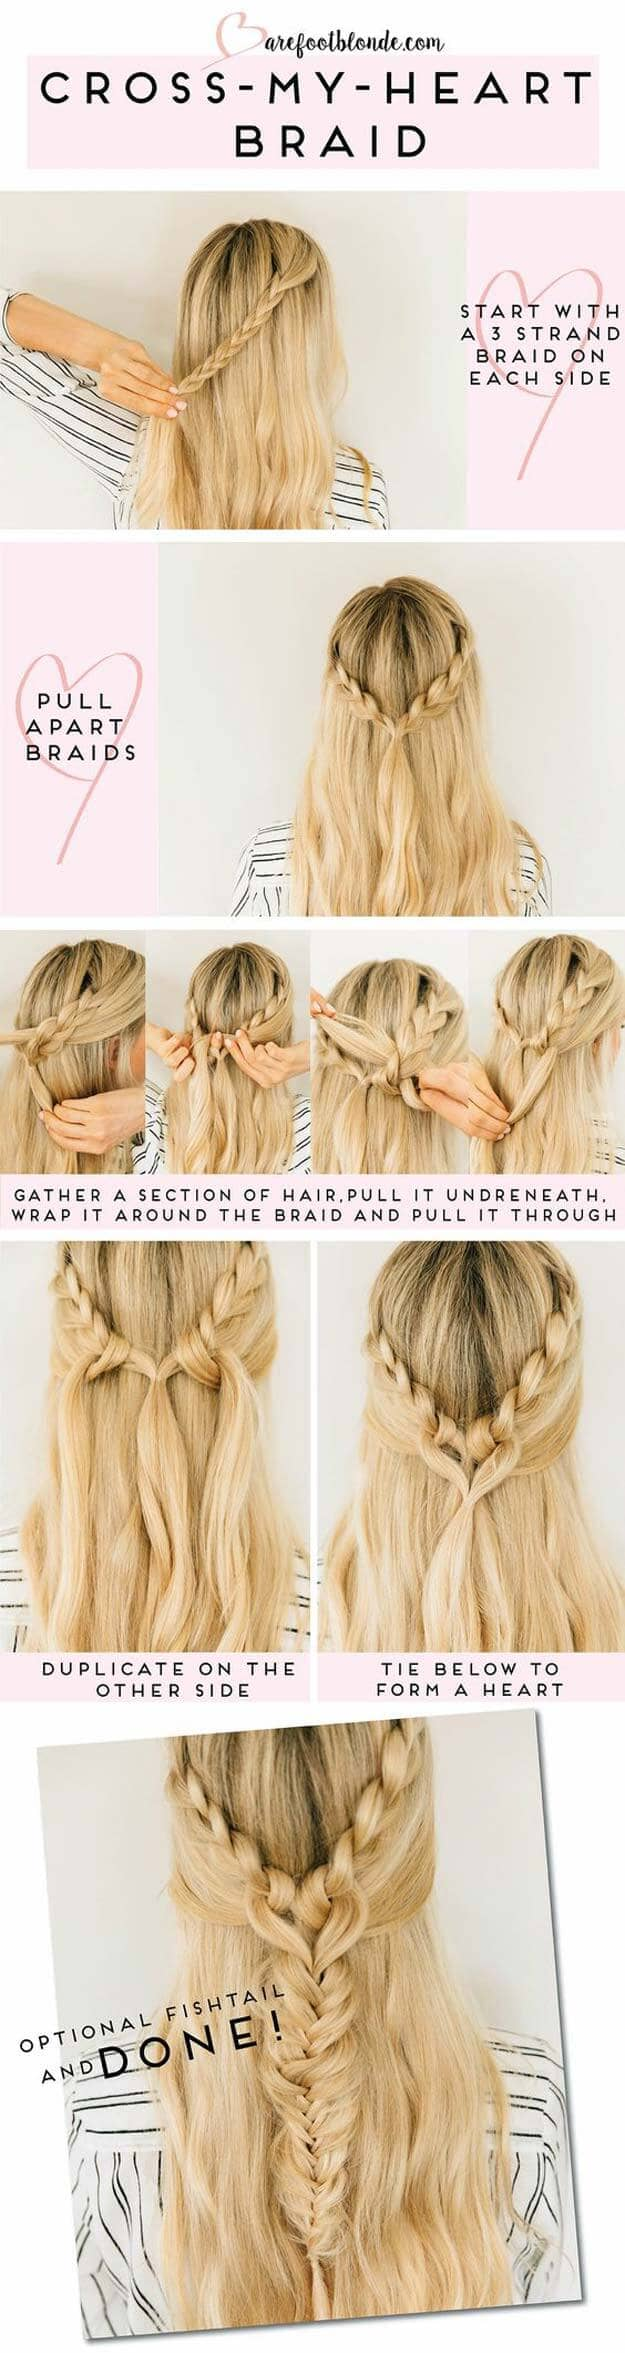 Criss Cross-My-Heart Braid